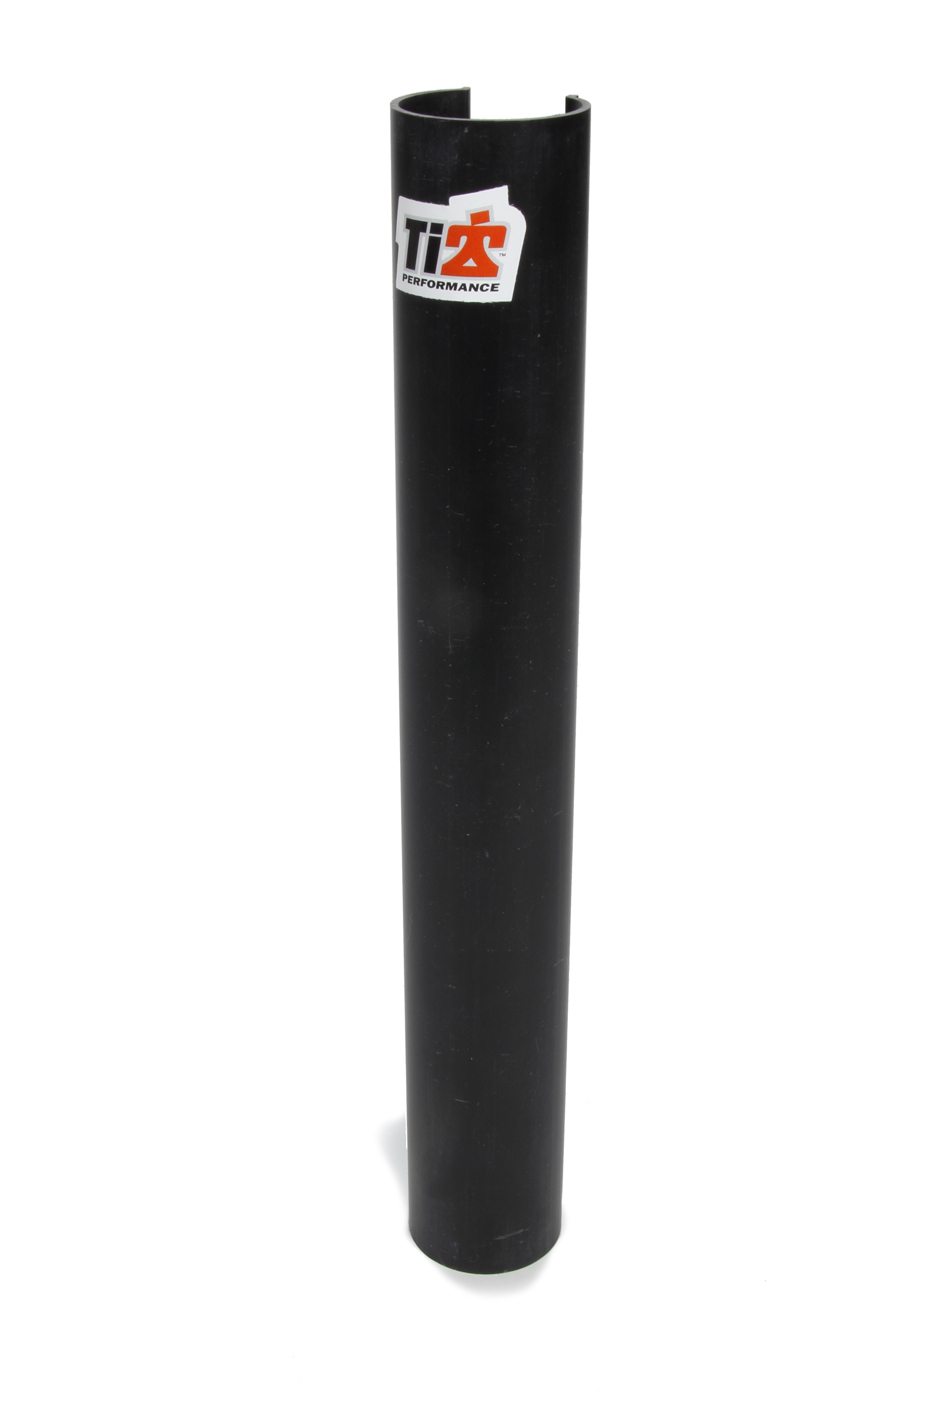 Ti22 PERFORMANCE Shock Cover Plastic Small Body P/N -TIP8308